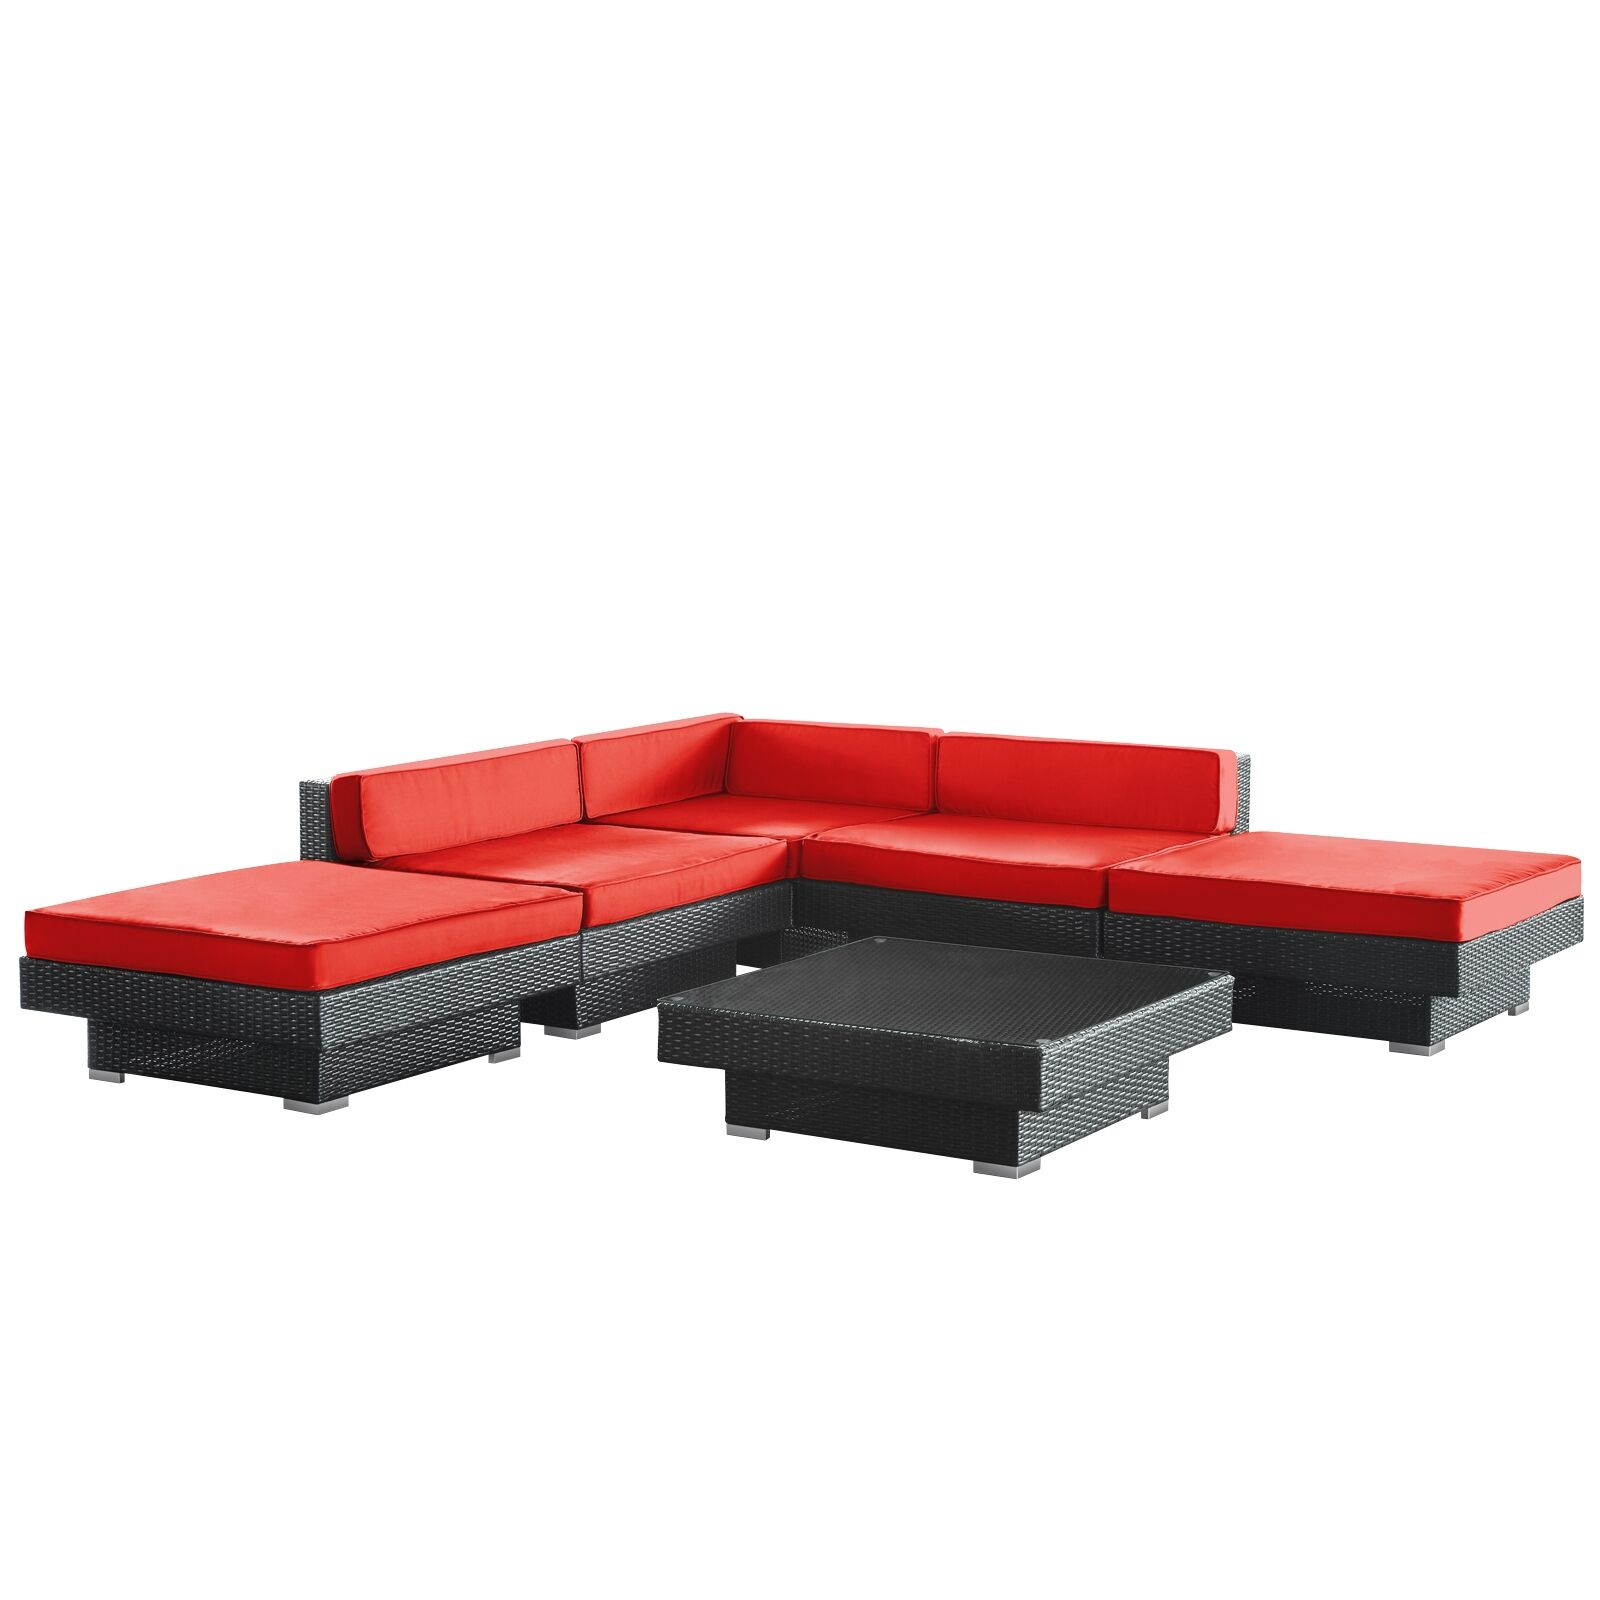 Luxury 6 Piece Rattan Sectional Set with Cushions Color: Espresso, Fabric: Red